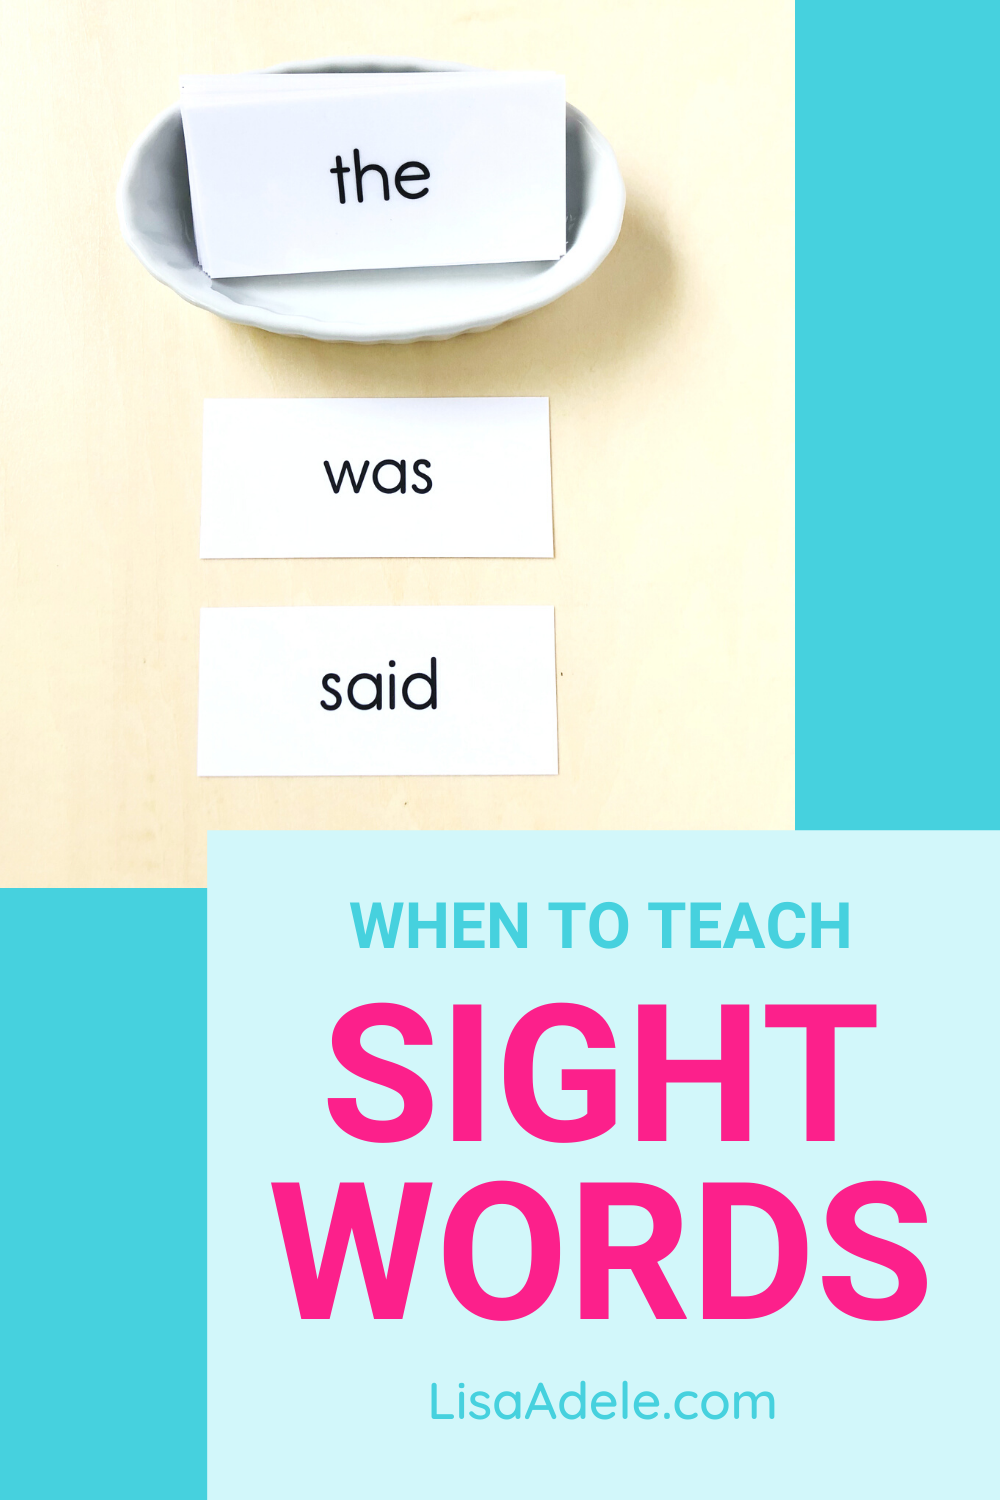 Sight Words Vs Phonics for Learning to Read at Home